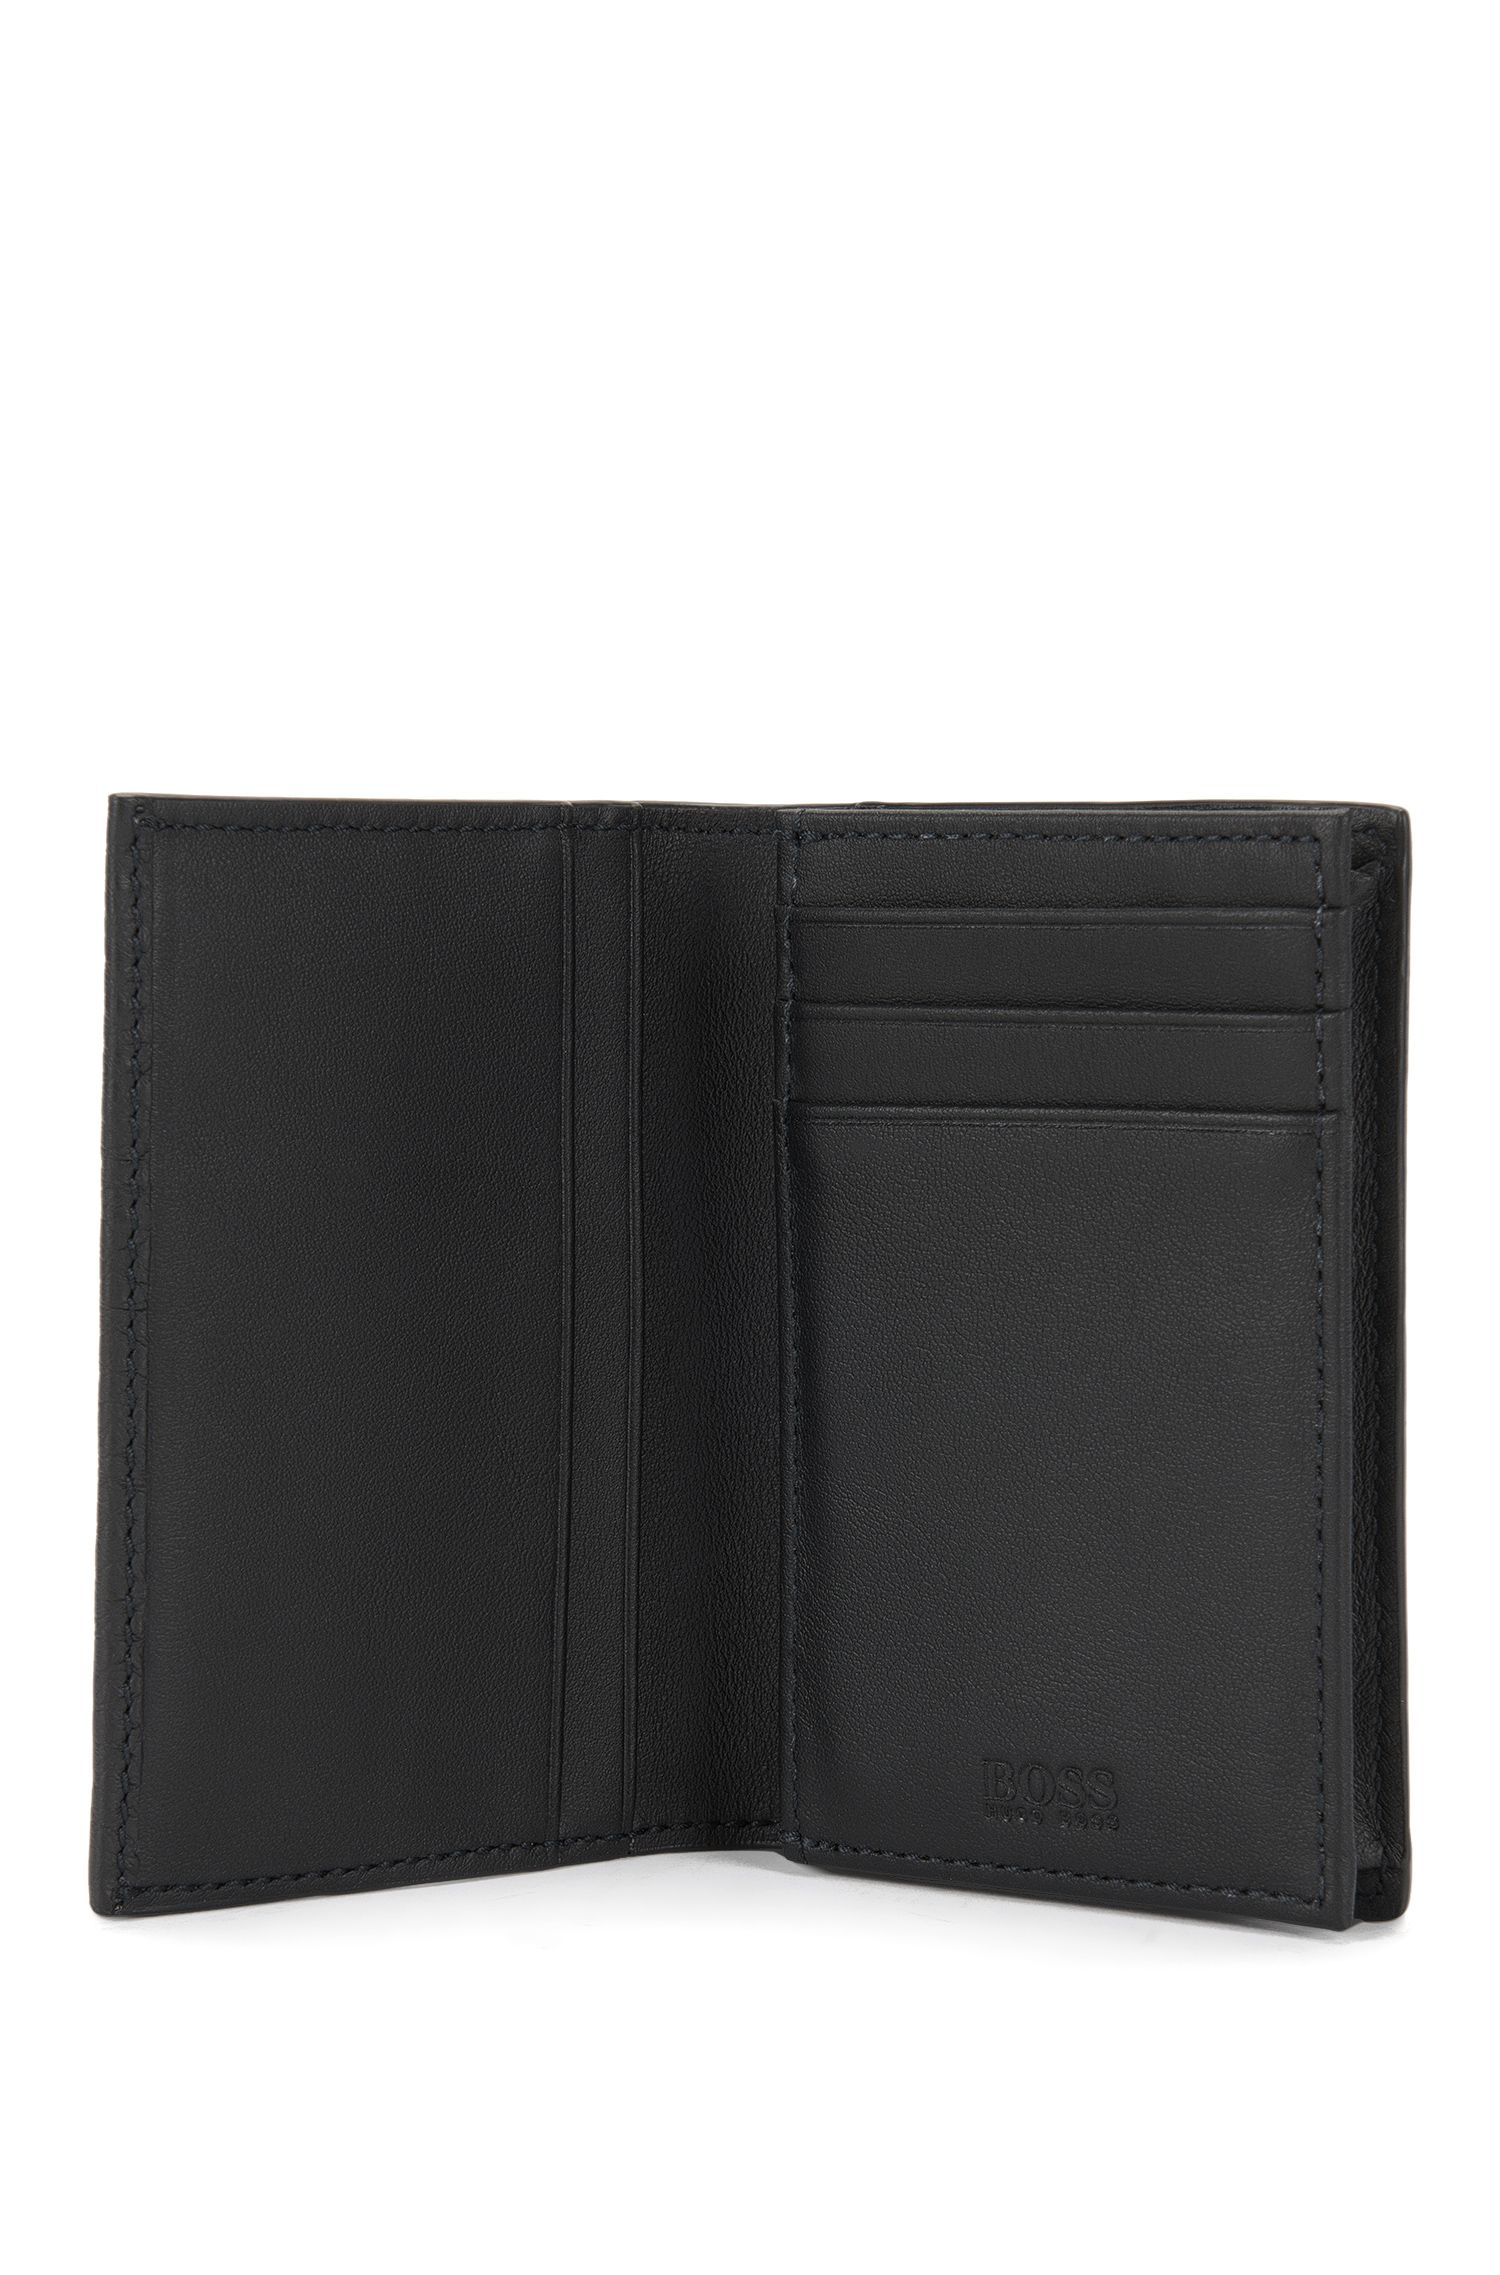 Porte-cartes en cuir grainé de la collection Traveller